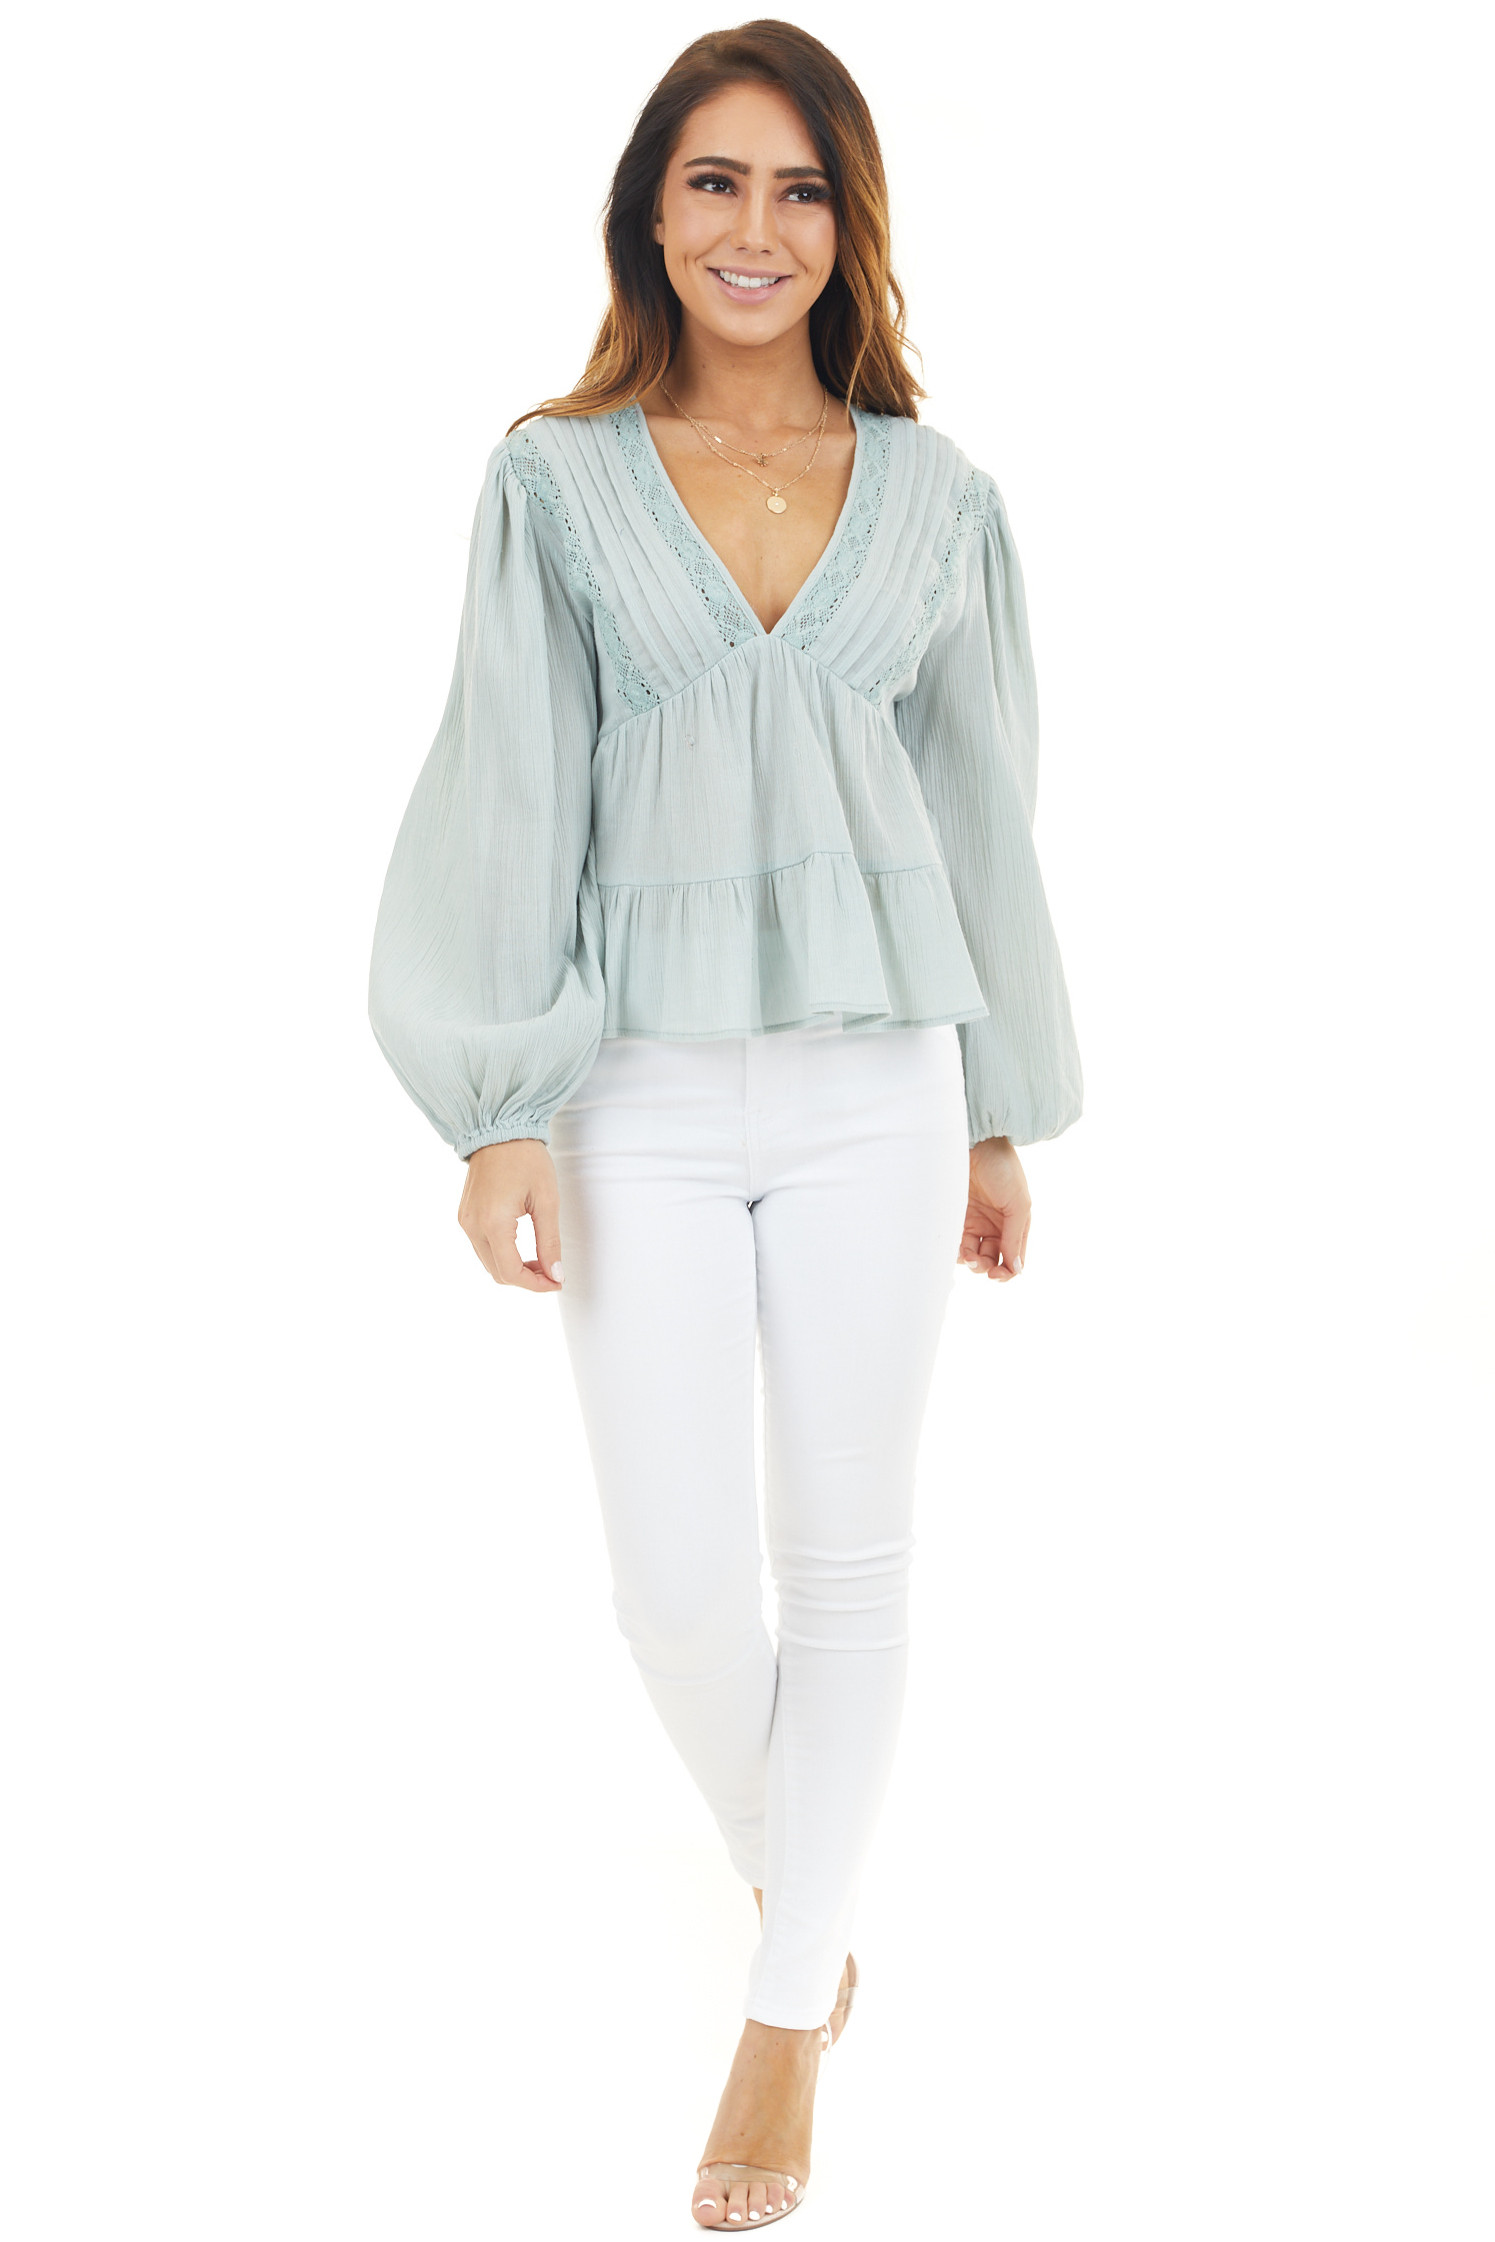 Mint Long Sleeve Babydoll Blouse with Sheer Lace Details